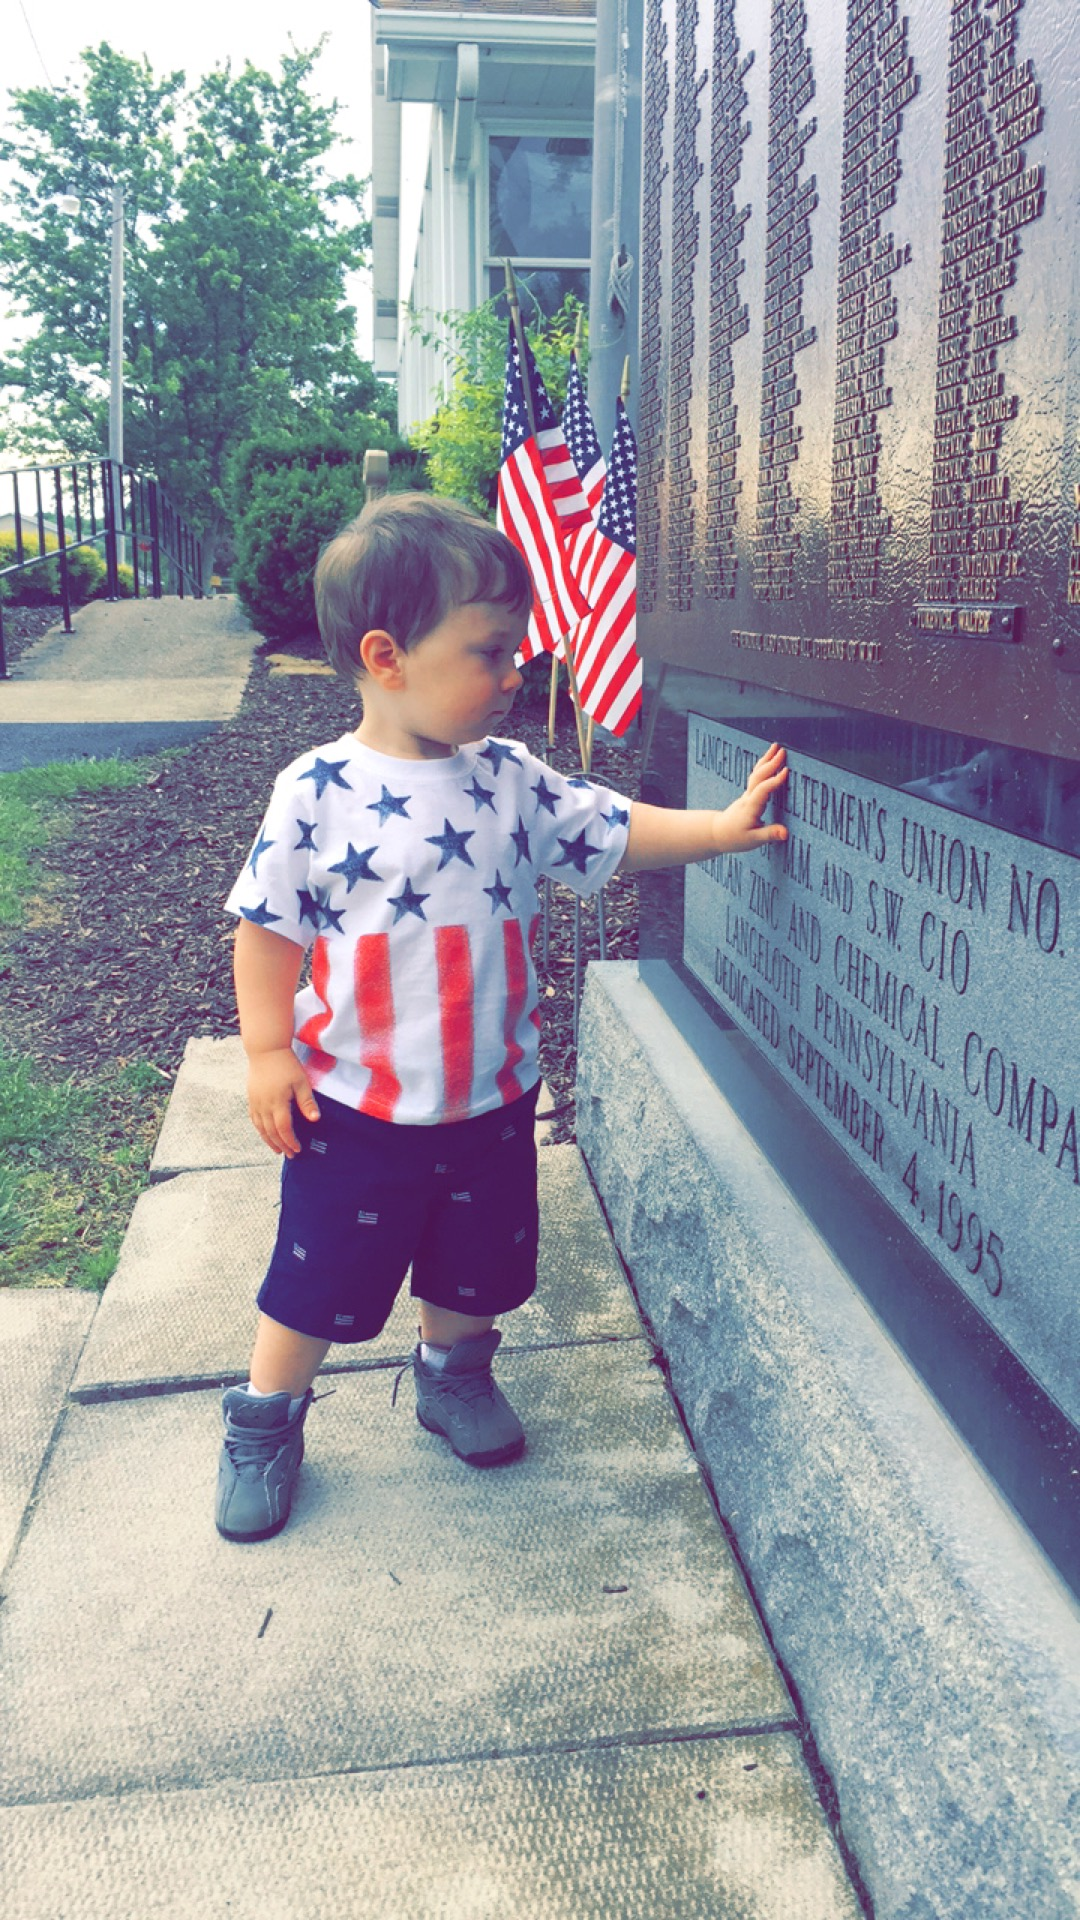 Rowan checking out a coal miner's memorial display in Langeloth, Pa. Photo submitted by his mom, Lauren Reddinger.